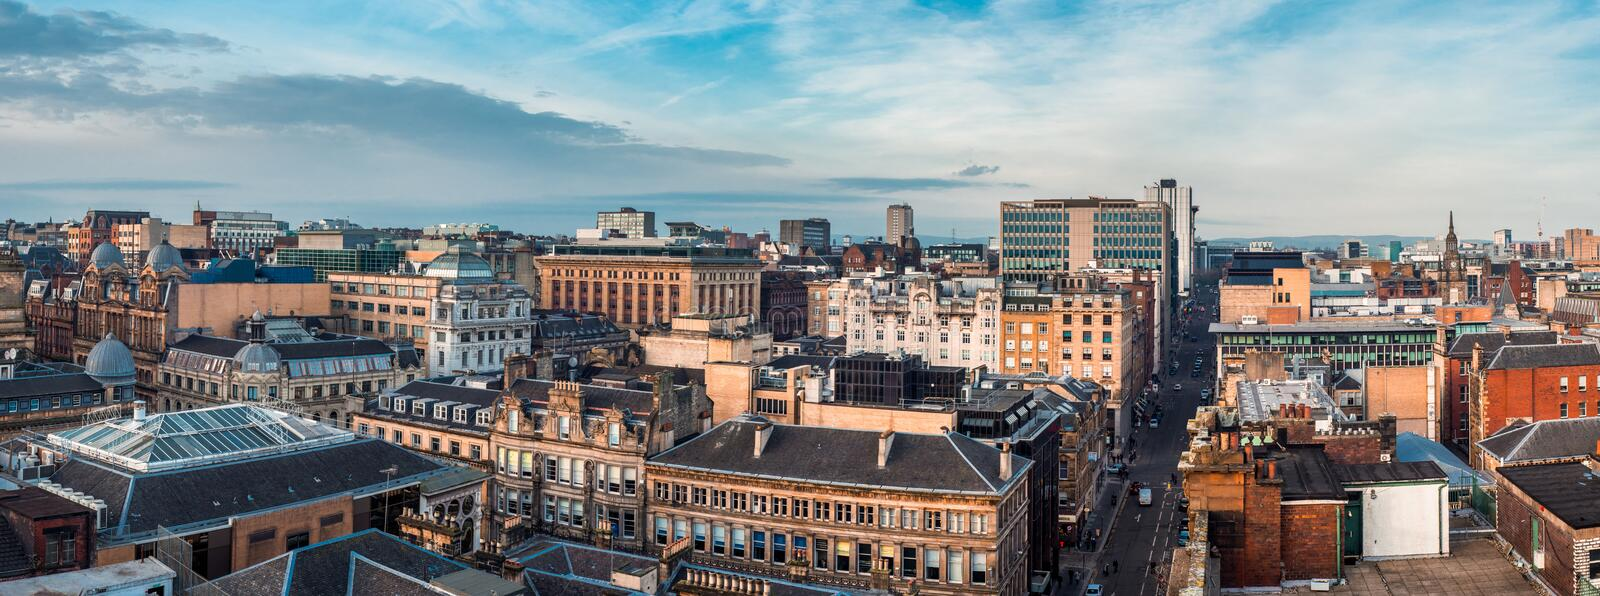 A wide panoramic looking out over buildings and streets in Glasgow city centre. Scotland, United Kingdom. Glasgow / Scotland - February 15, 2019: A wide stock photography